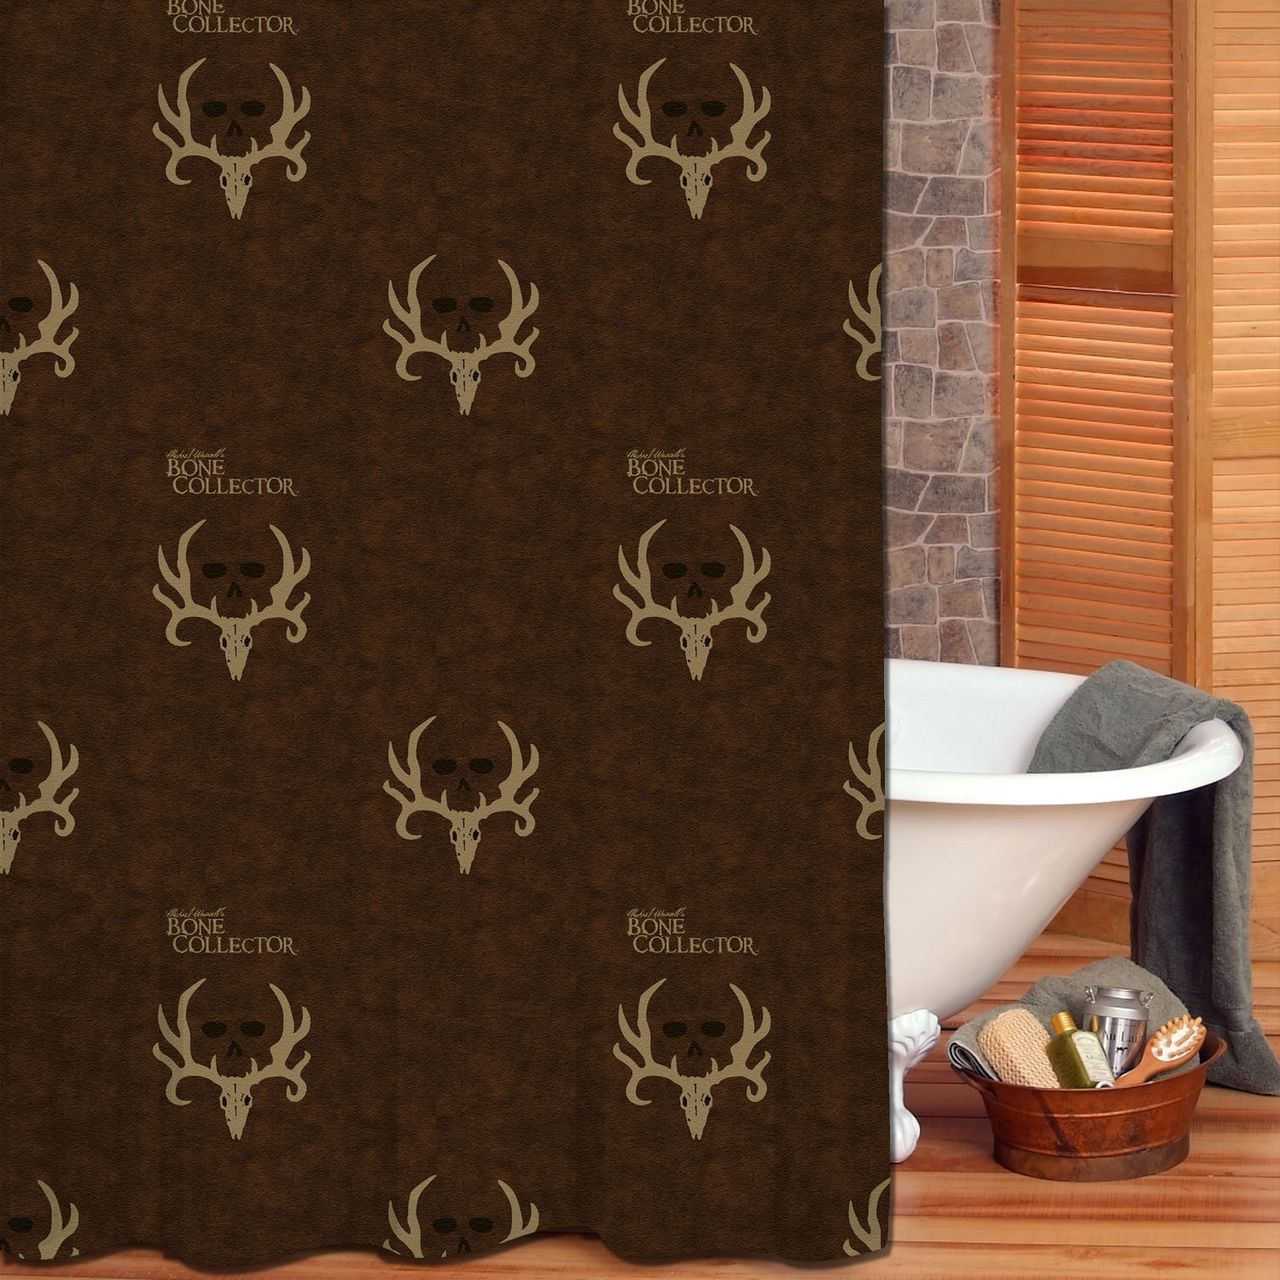 Discount Duos - Bone Collector Brown and Tan Fabric Shower Curtain ...